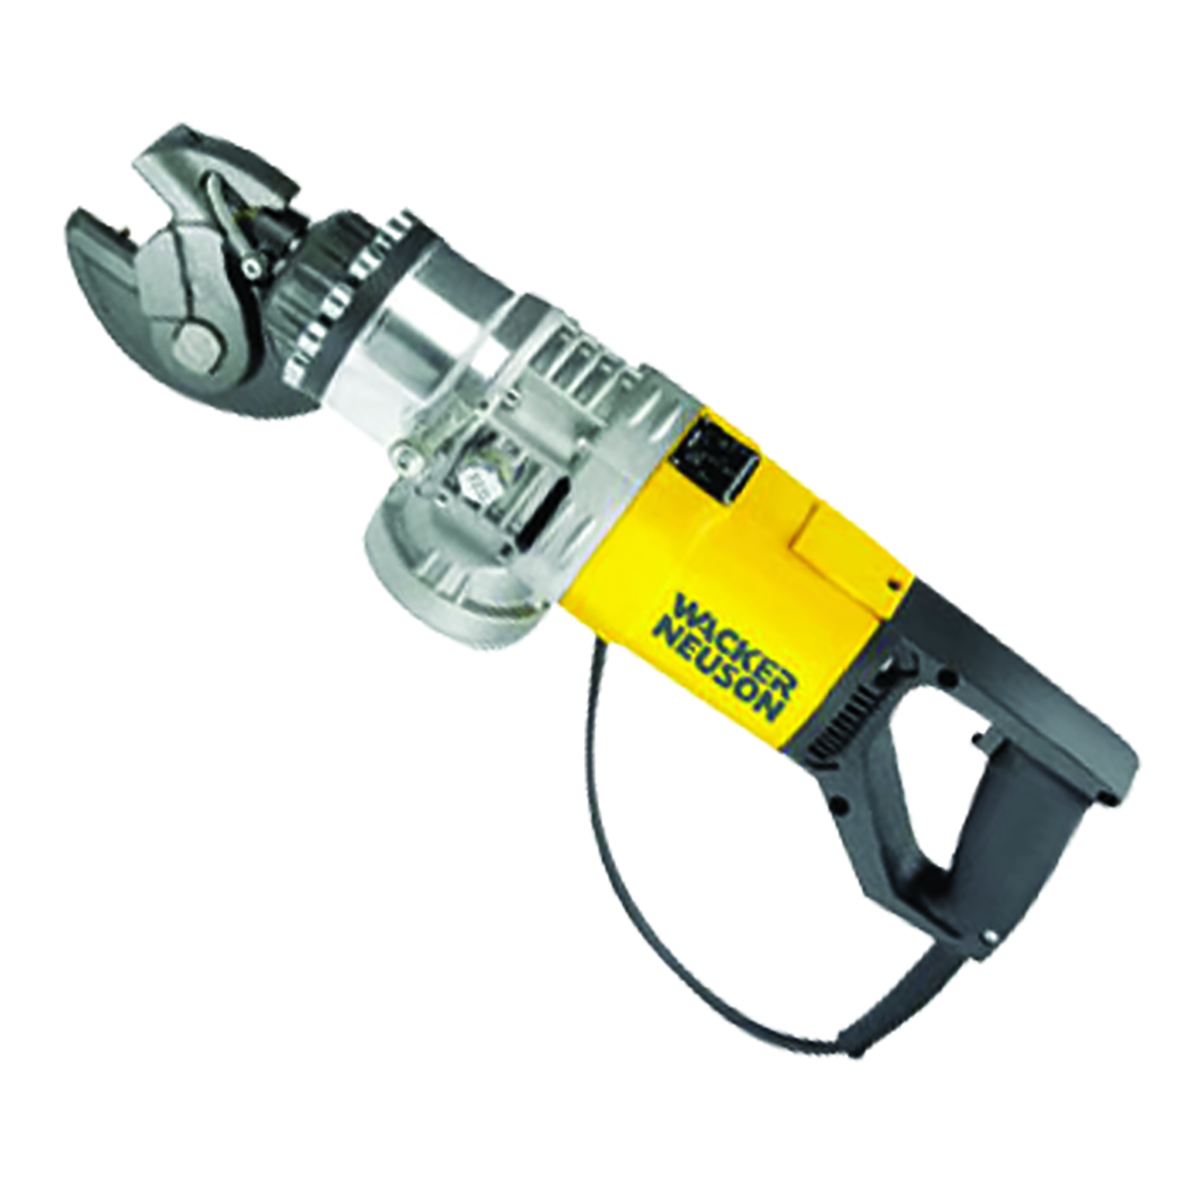 Rebar Cutter & Bender 20mm Capacity